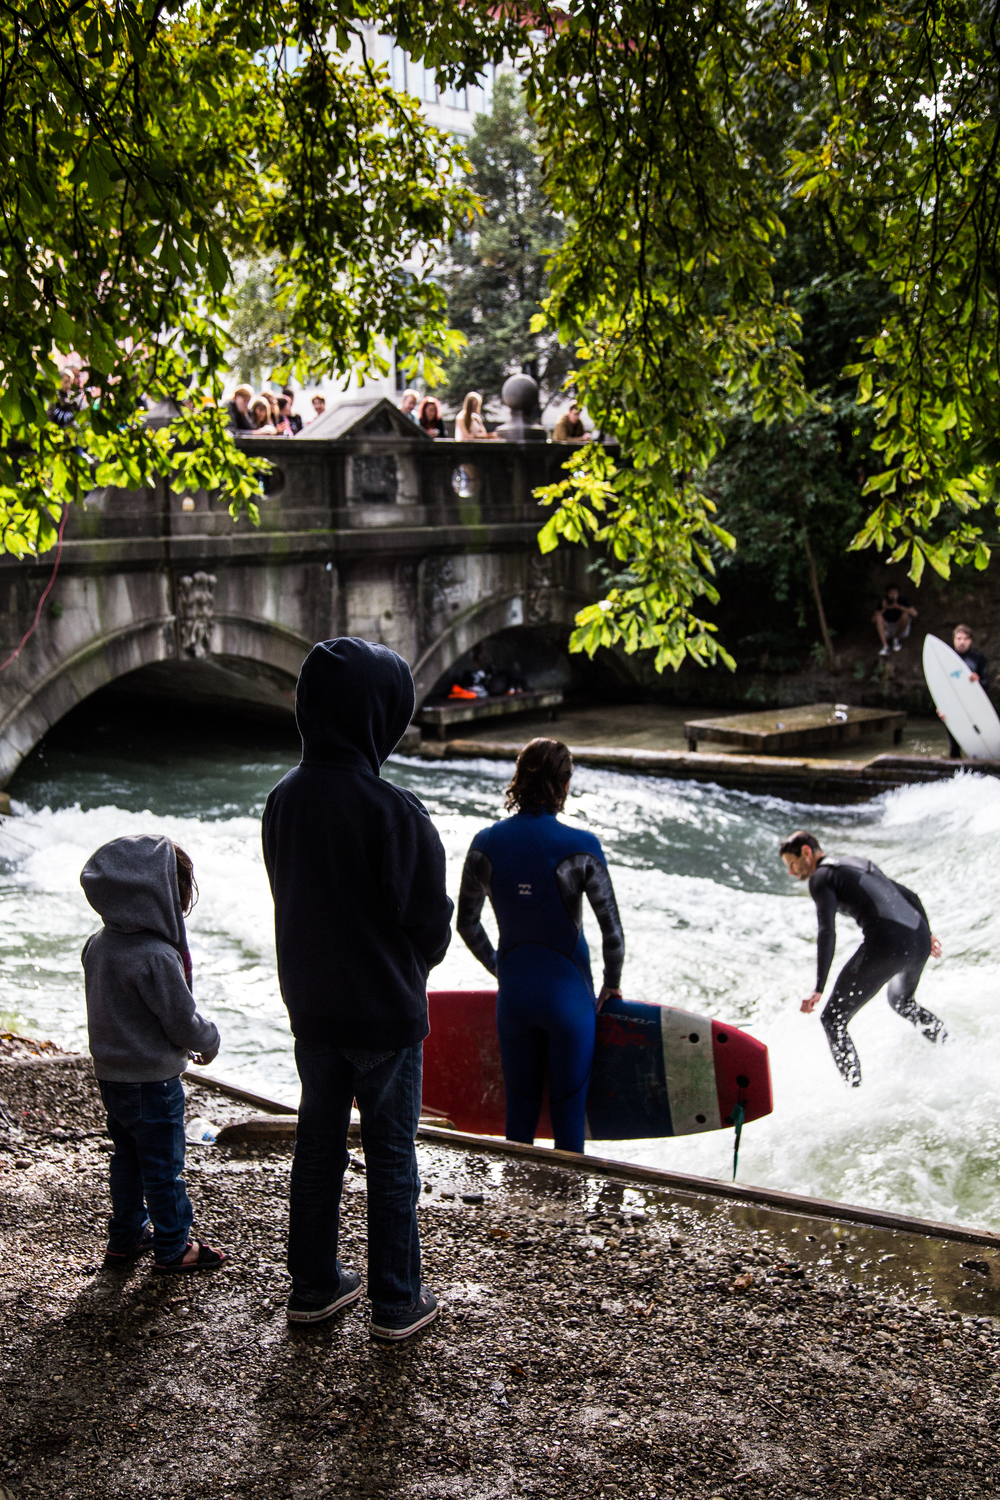 Watching the river surfers.